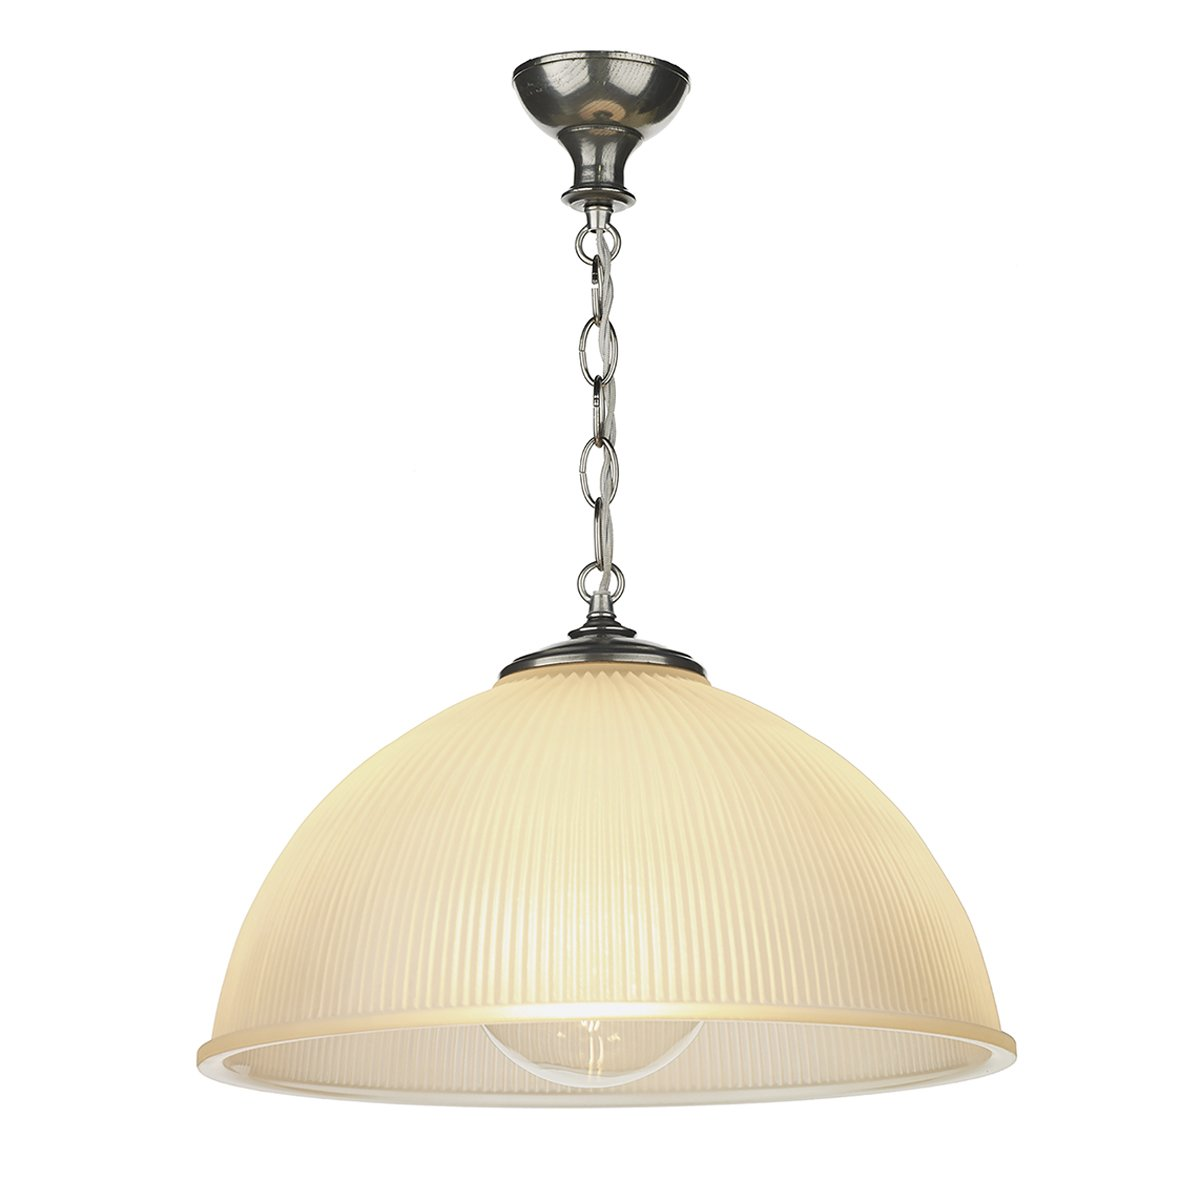 David Hunt Lighting YEA8667 Yeats 1 Light Pendant in Pewter